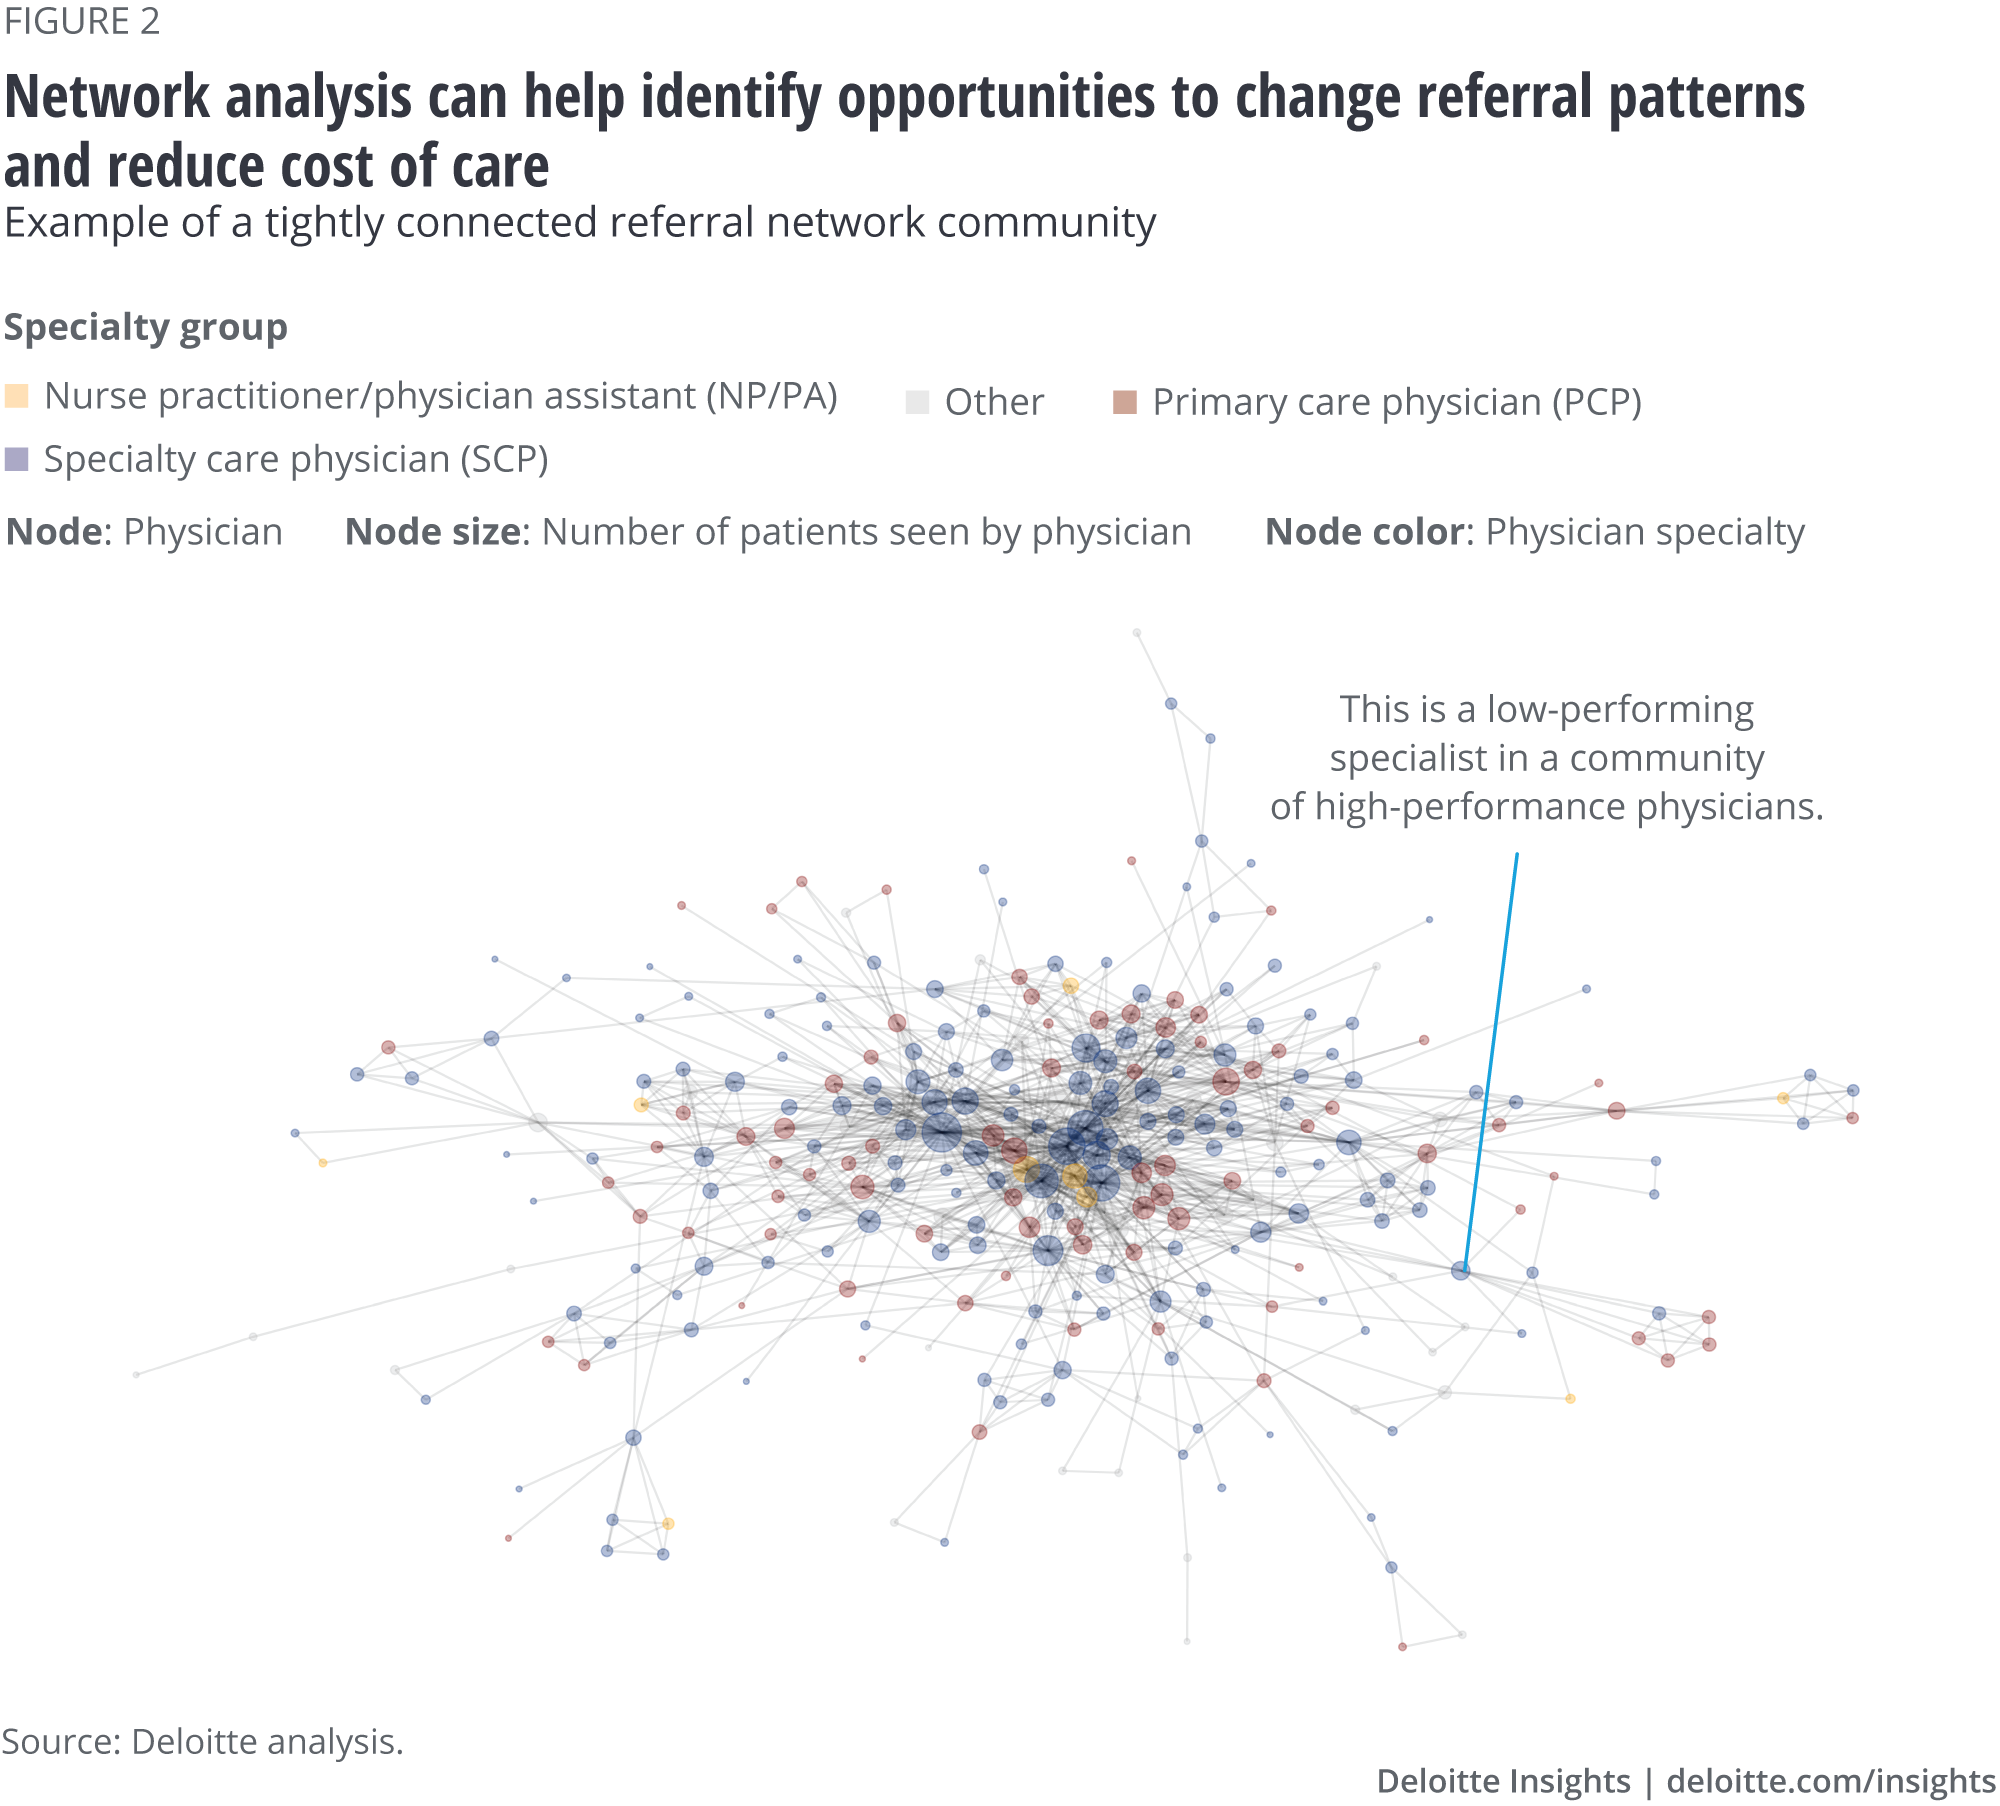 Network analysis can help identify opportunities to change referral patterns and reduce cost of care